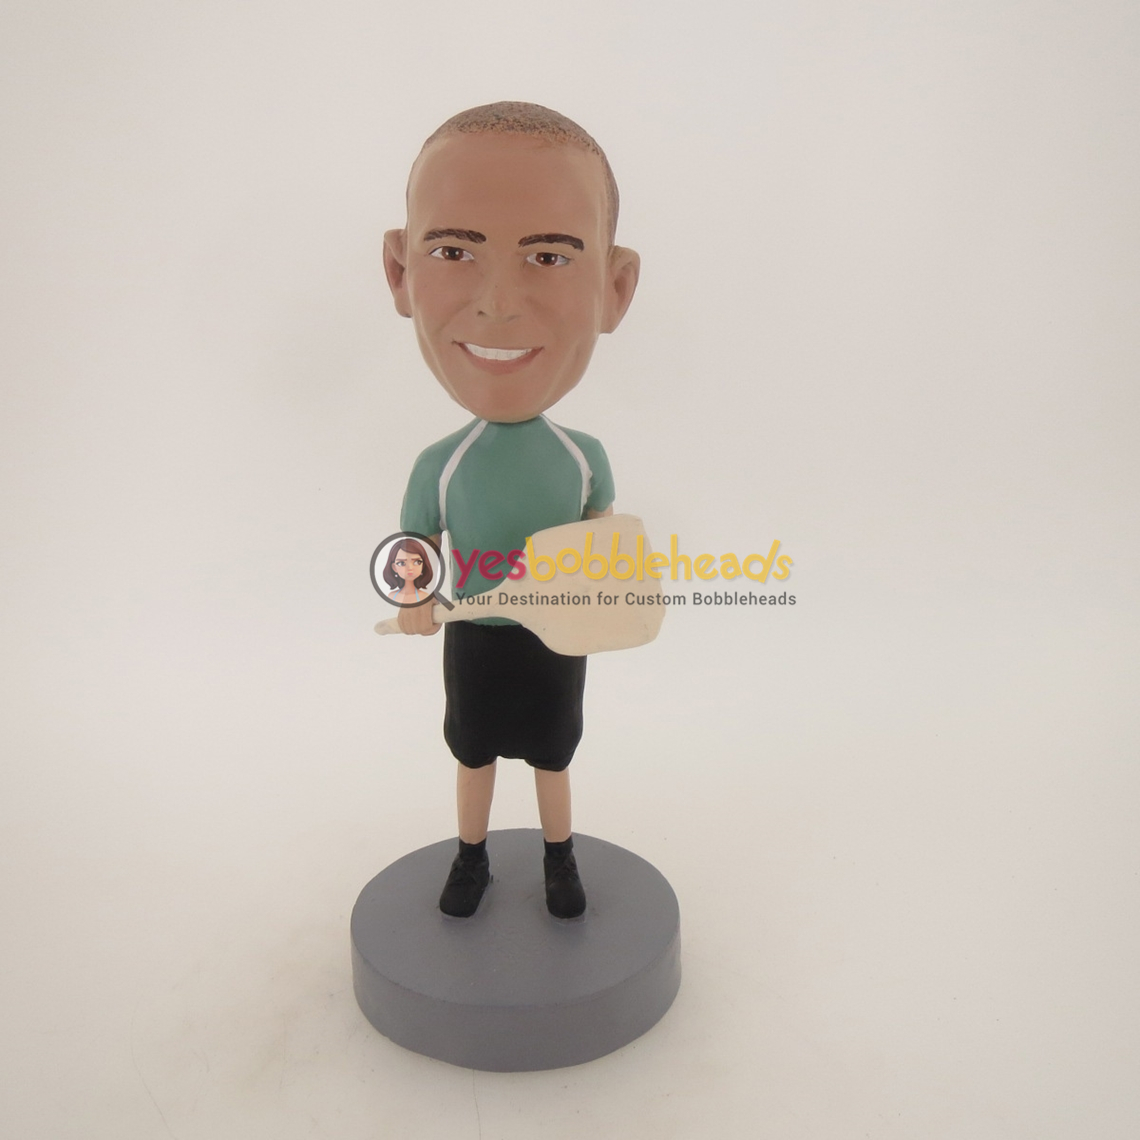 Picture of Custom Bobblehead Doll: Man With Racket